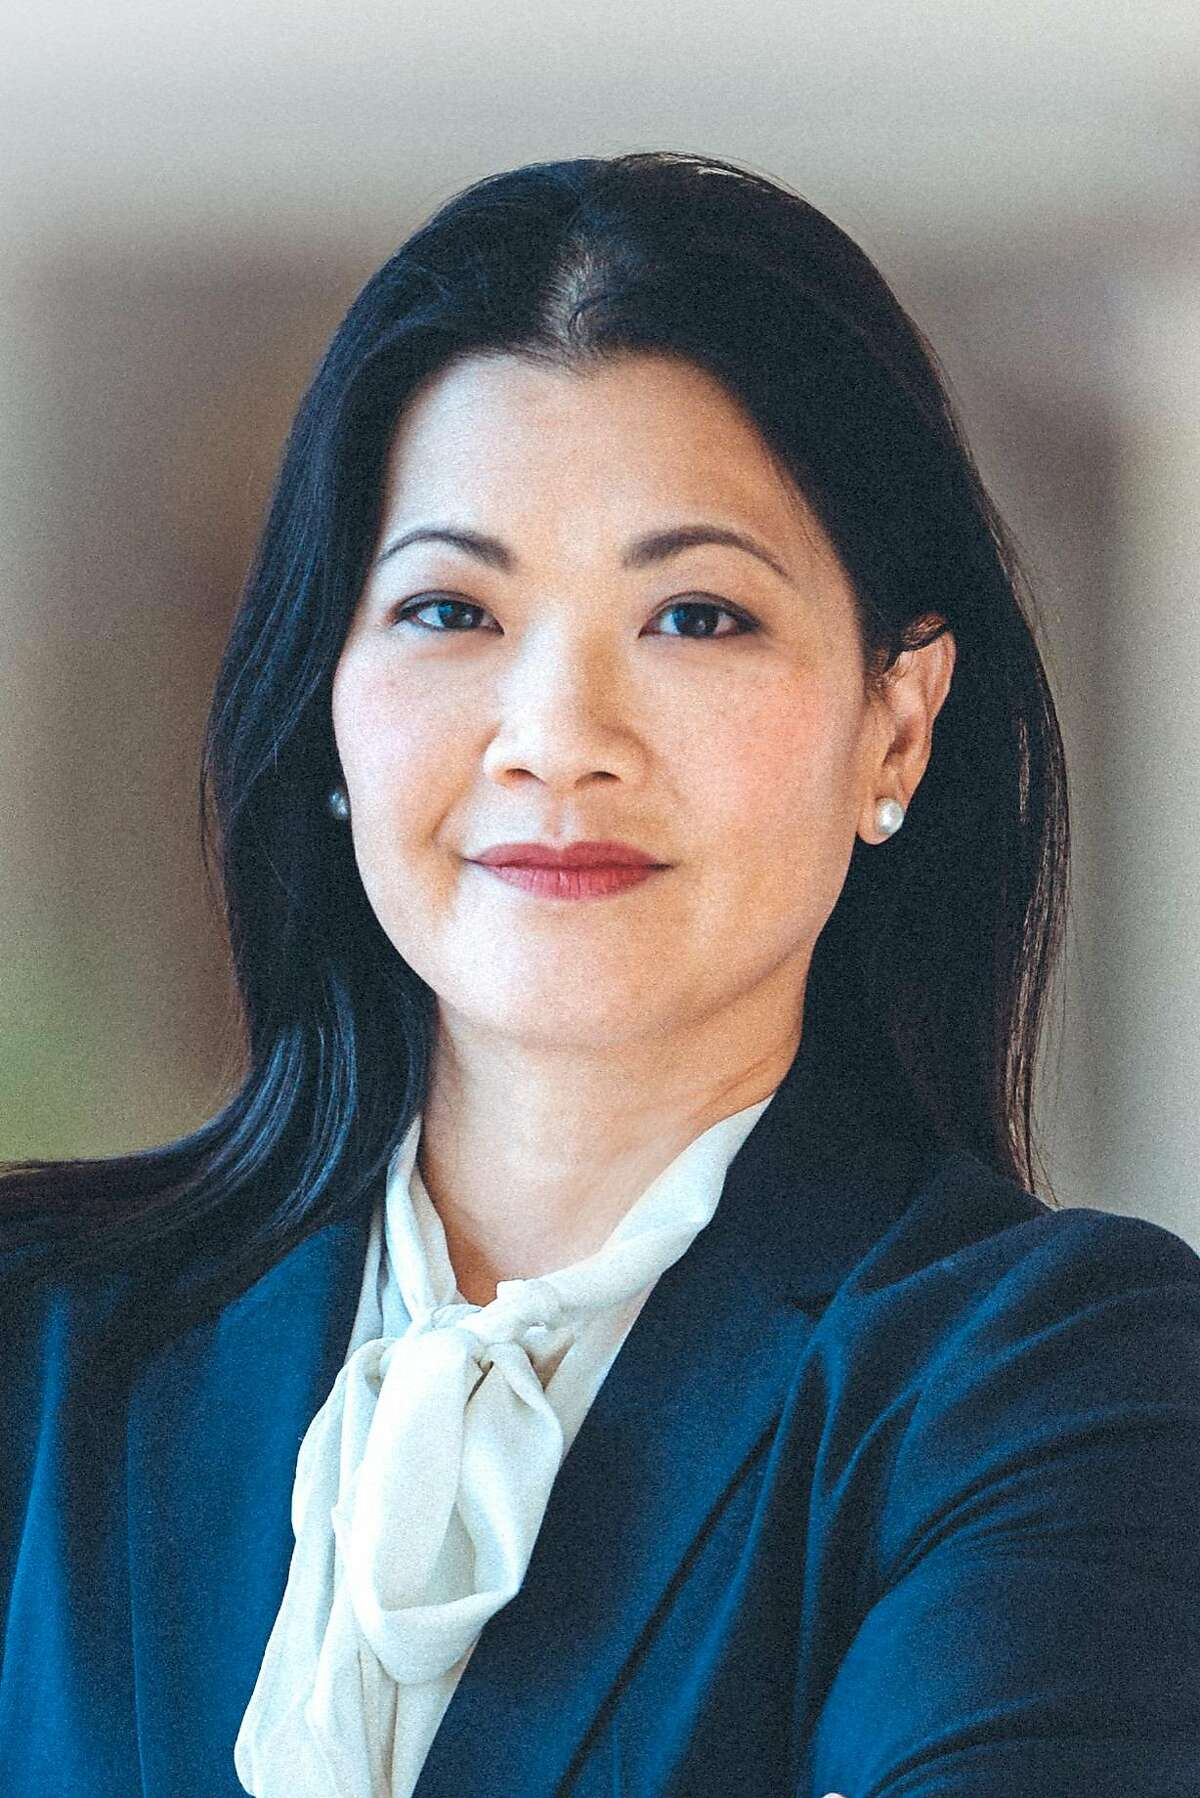 Nancy Tung, candidate for San Francisco district attorney